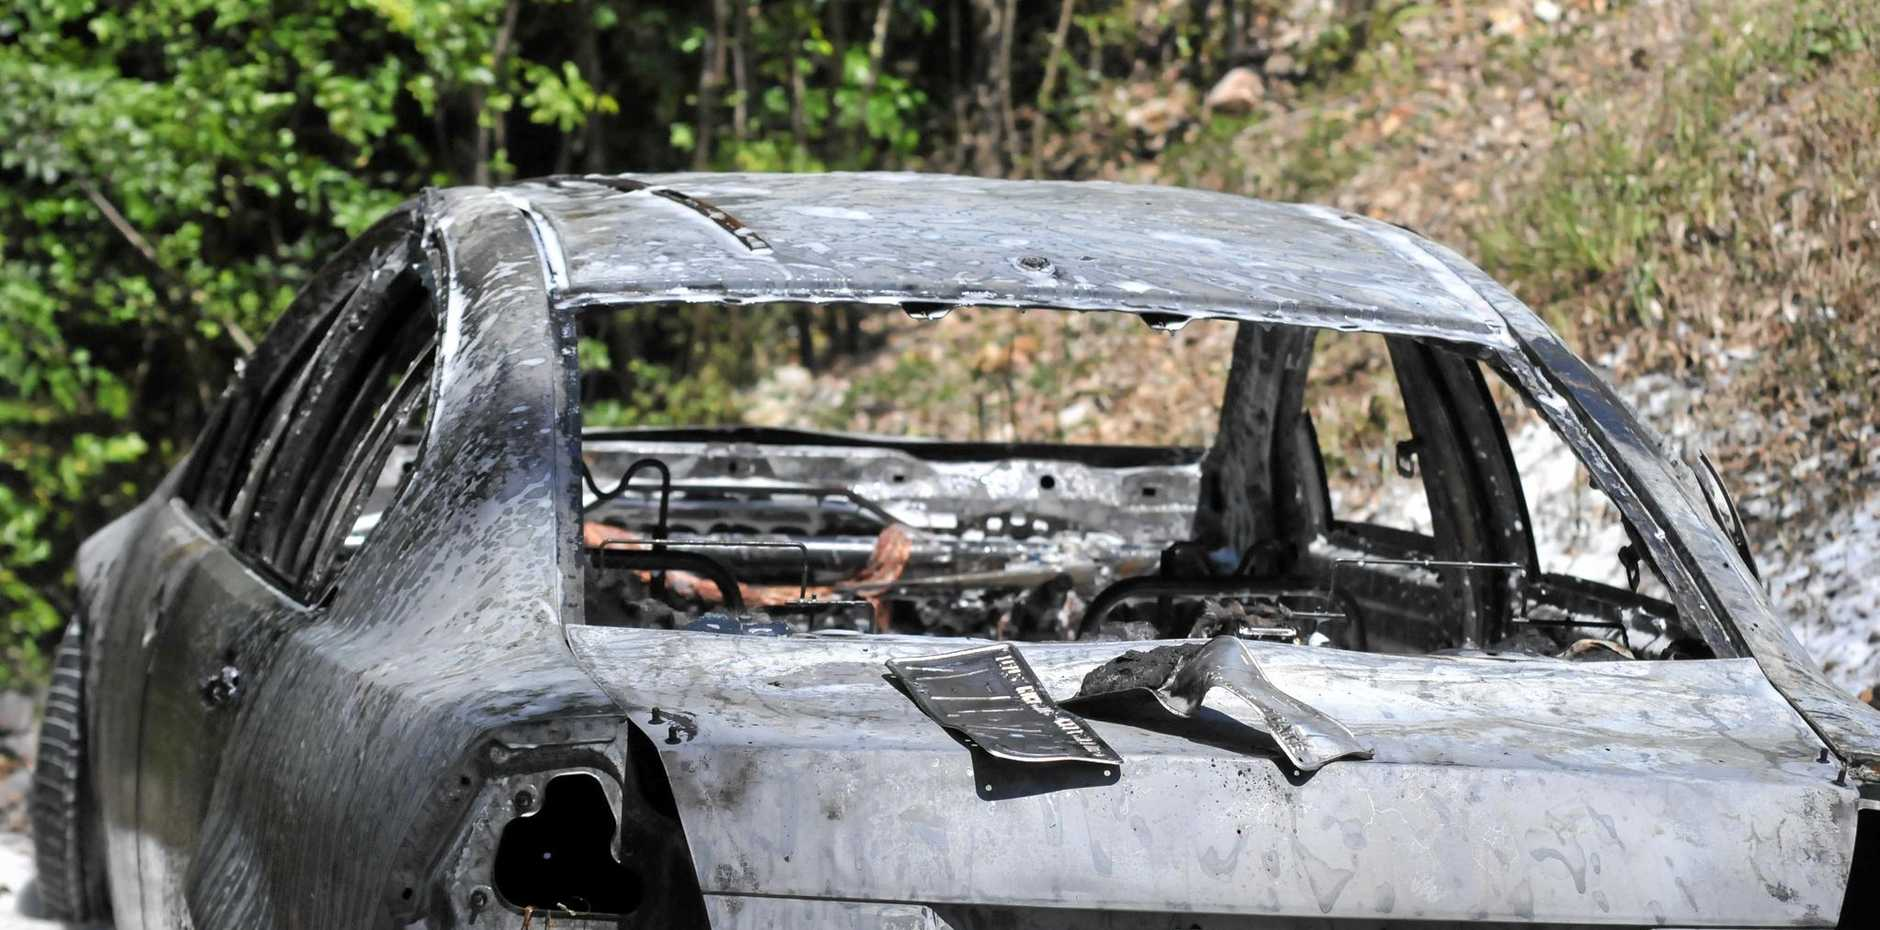 The burnt remains of a vehicle that was allegedly dumped at Six Mile.